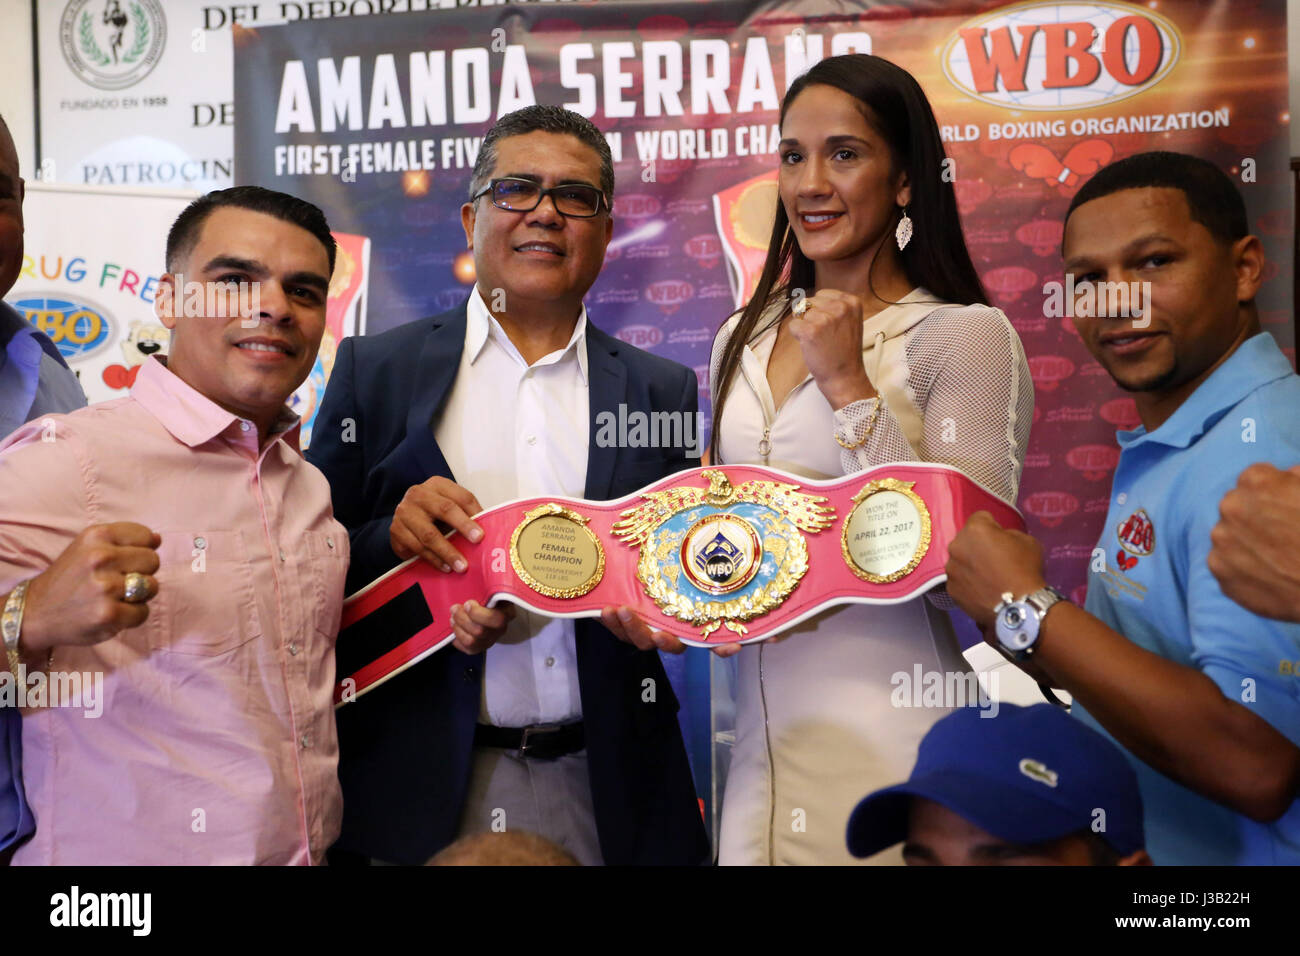 Puerto Rican boxer Amanda Serrano (2R) poses with her belt and ring from the rooster weight division of the World - Stock Image